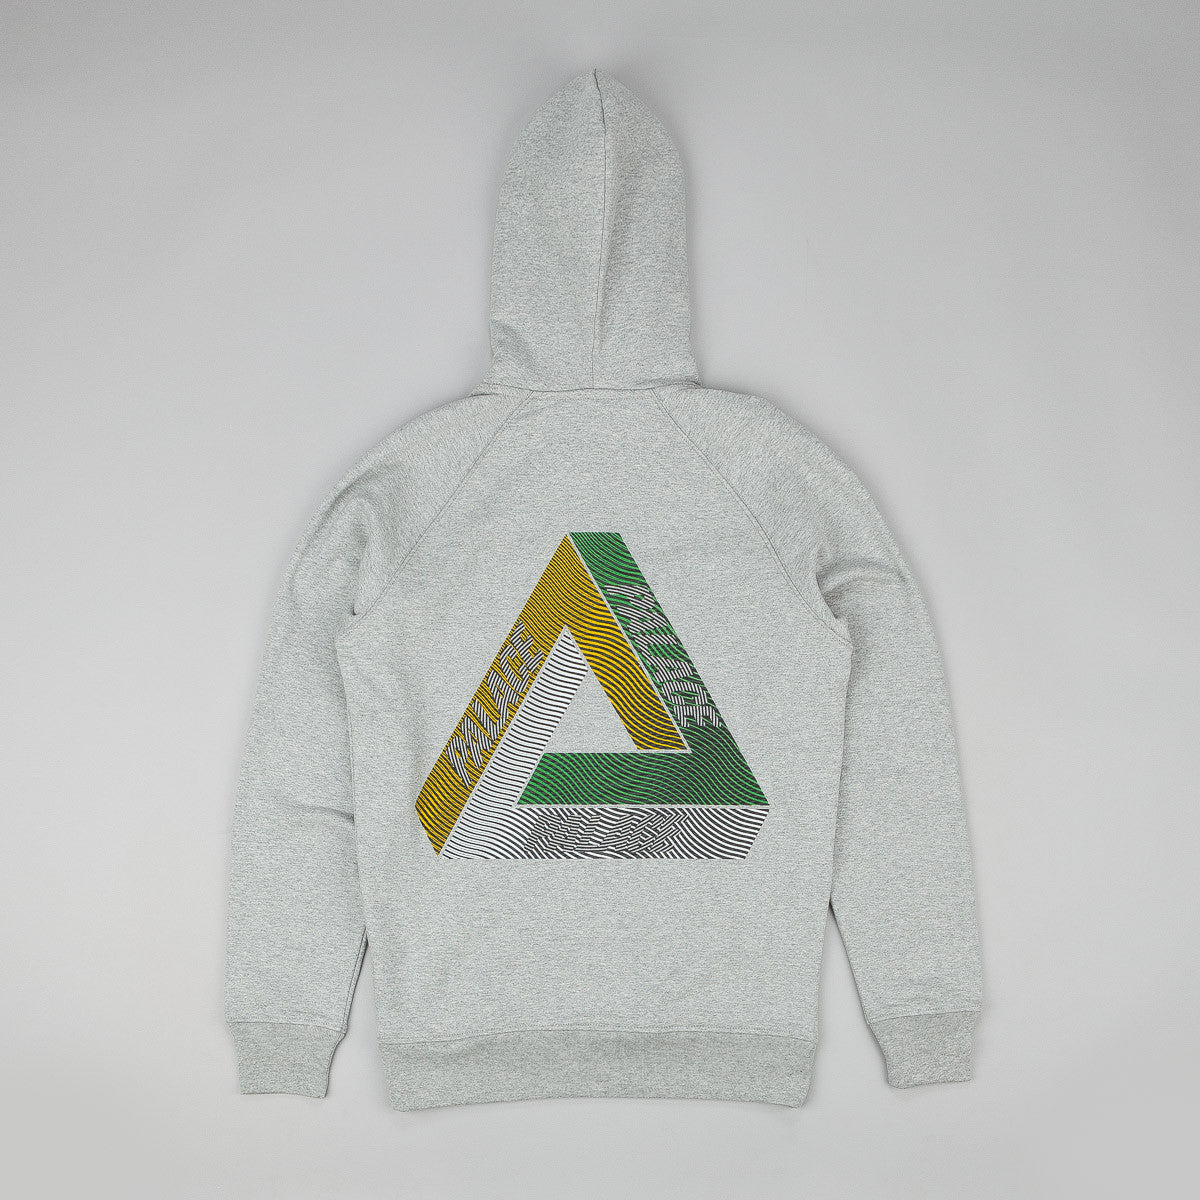 Palace Drury Yard Hooded Sweatshirt - Grey